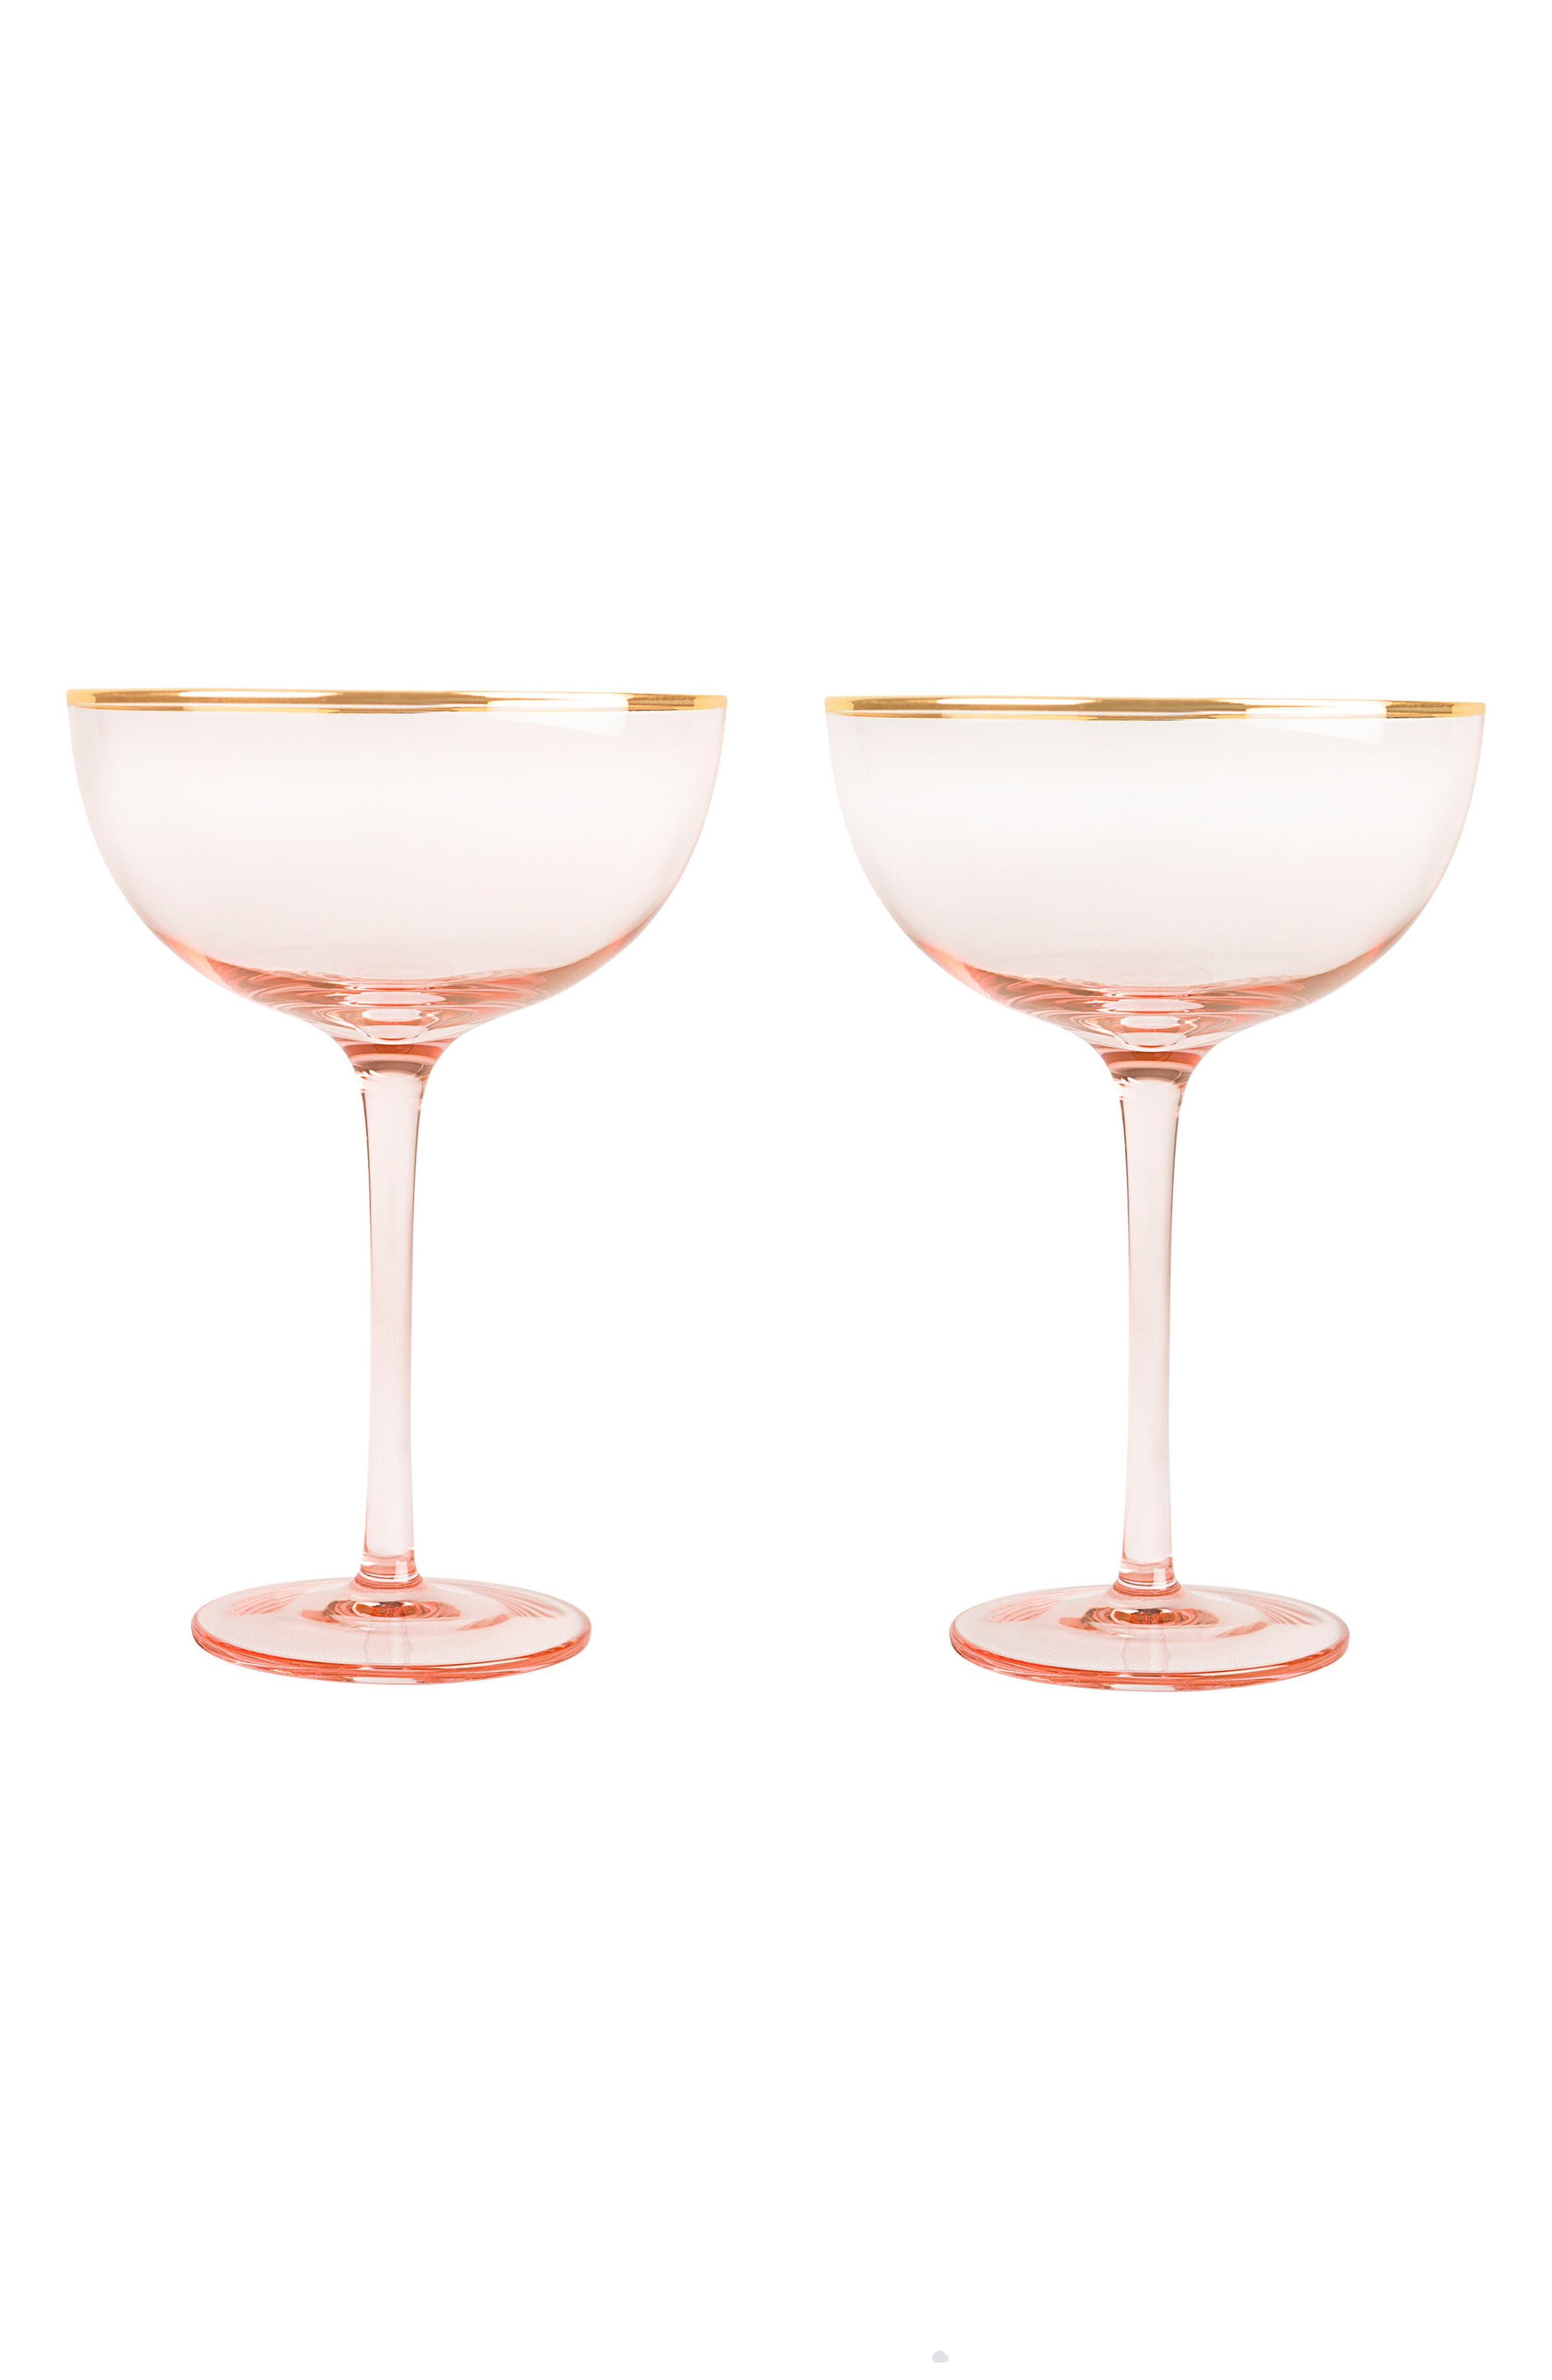 Monogram Set of 2 Champagne Coupes,                         Main,                         color, Blush